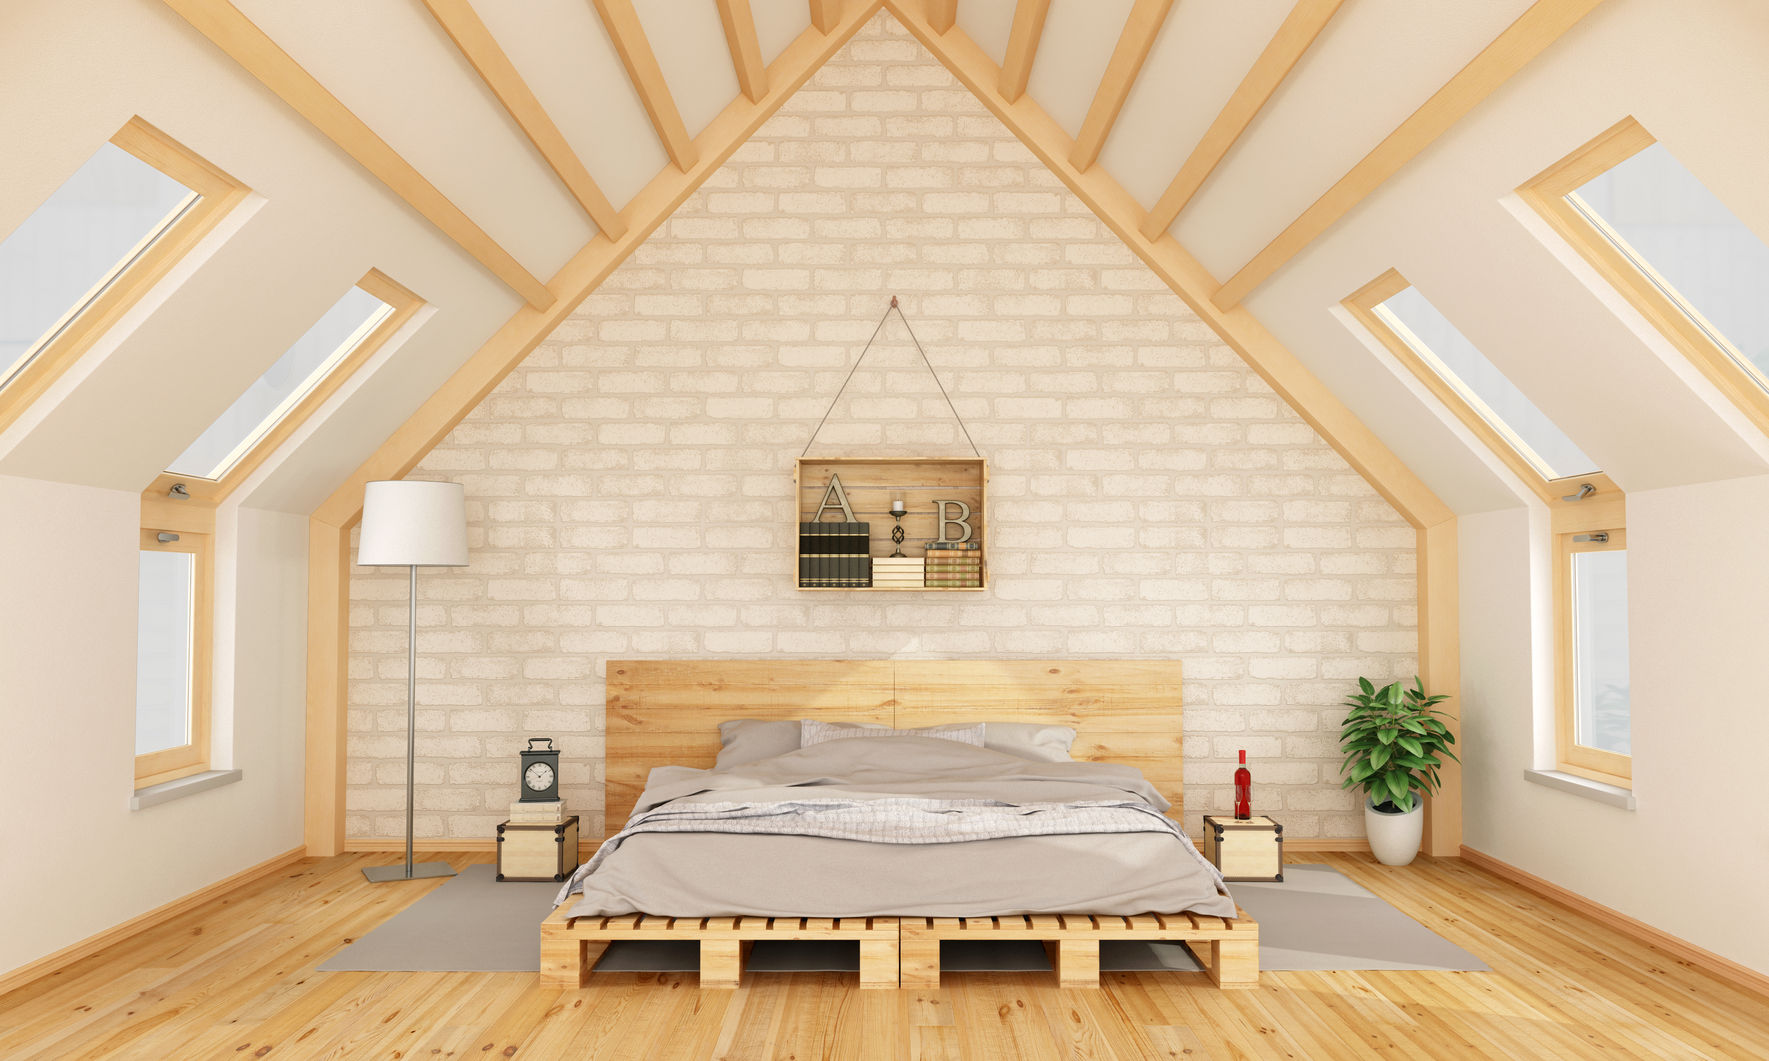 attic conversion for a bedroom